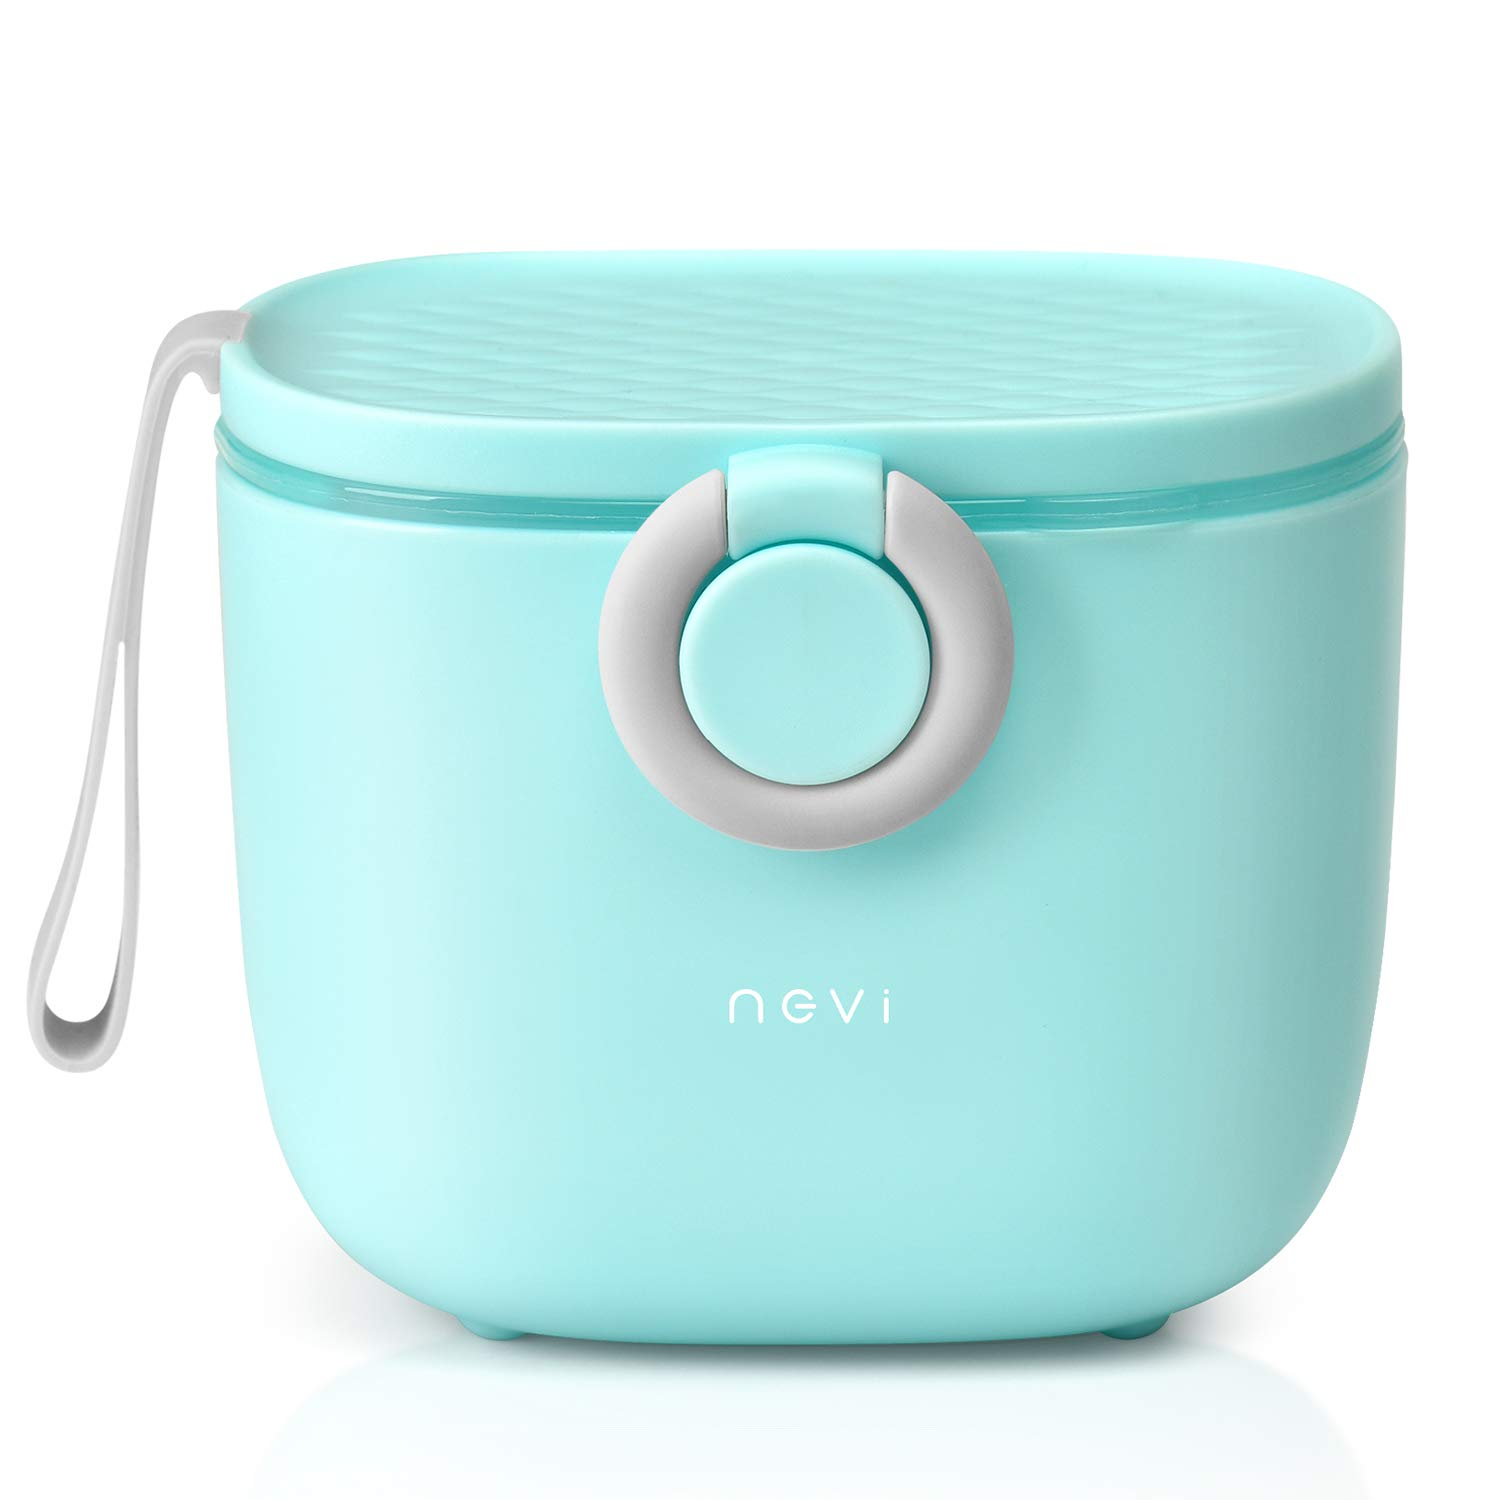 NCVI Baby Formula Dispenser with Scoop,16oz Milk Powder Dispenser Container Food Storage, Candy Fruit Box, Snack Containers, for Infant Toddler Children Travel (Blue)